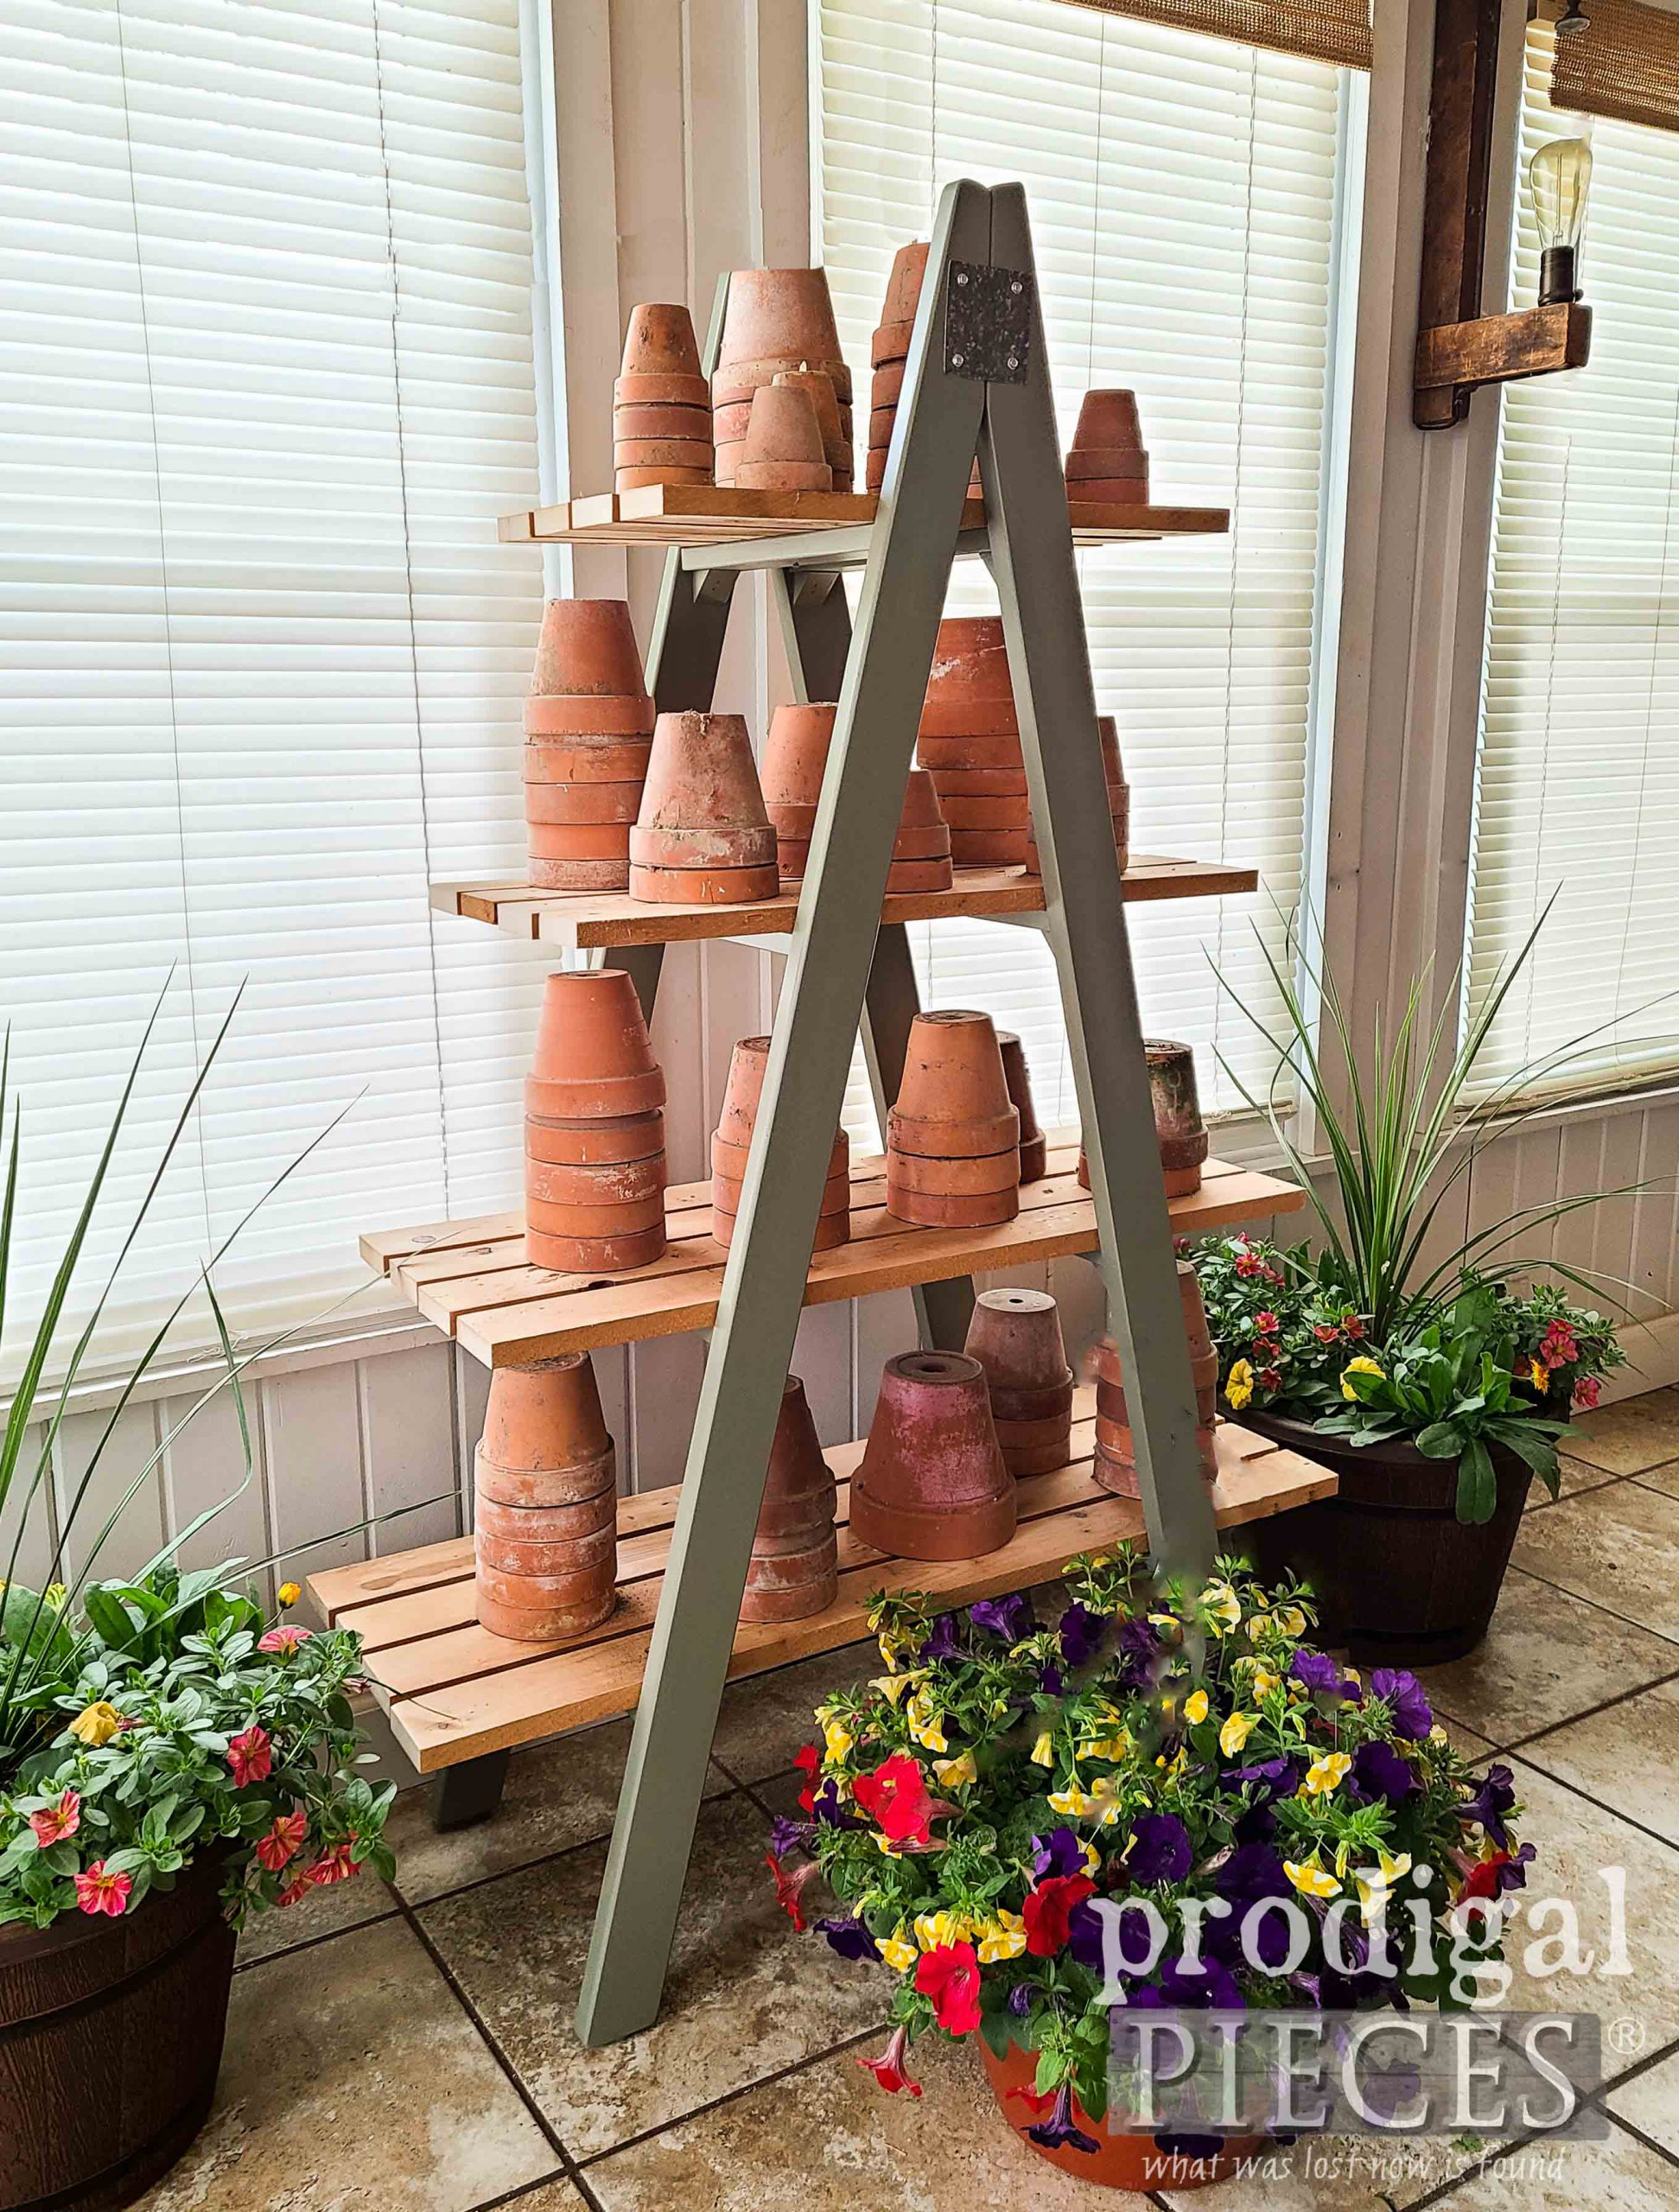 DIY Tiered Ladder Shelf Made from Reclaimed Materials and Upcycled Bunk Bed Ladder by Larissa of Prodigal Pieces | prodigalpieces.com #prodigalpieces #garden #farmhouse #home #homedecor